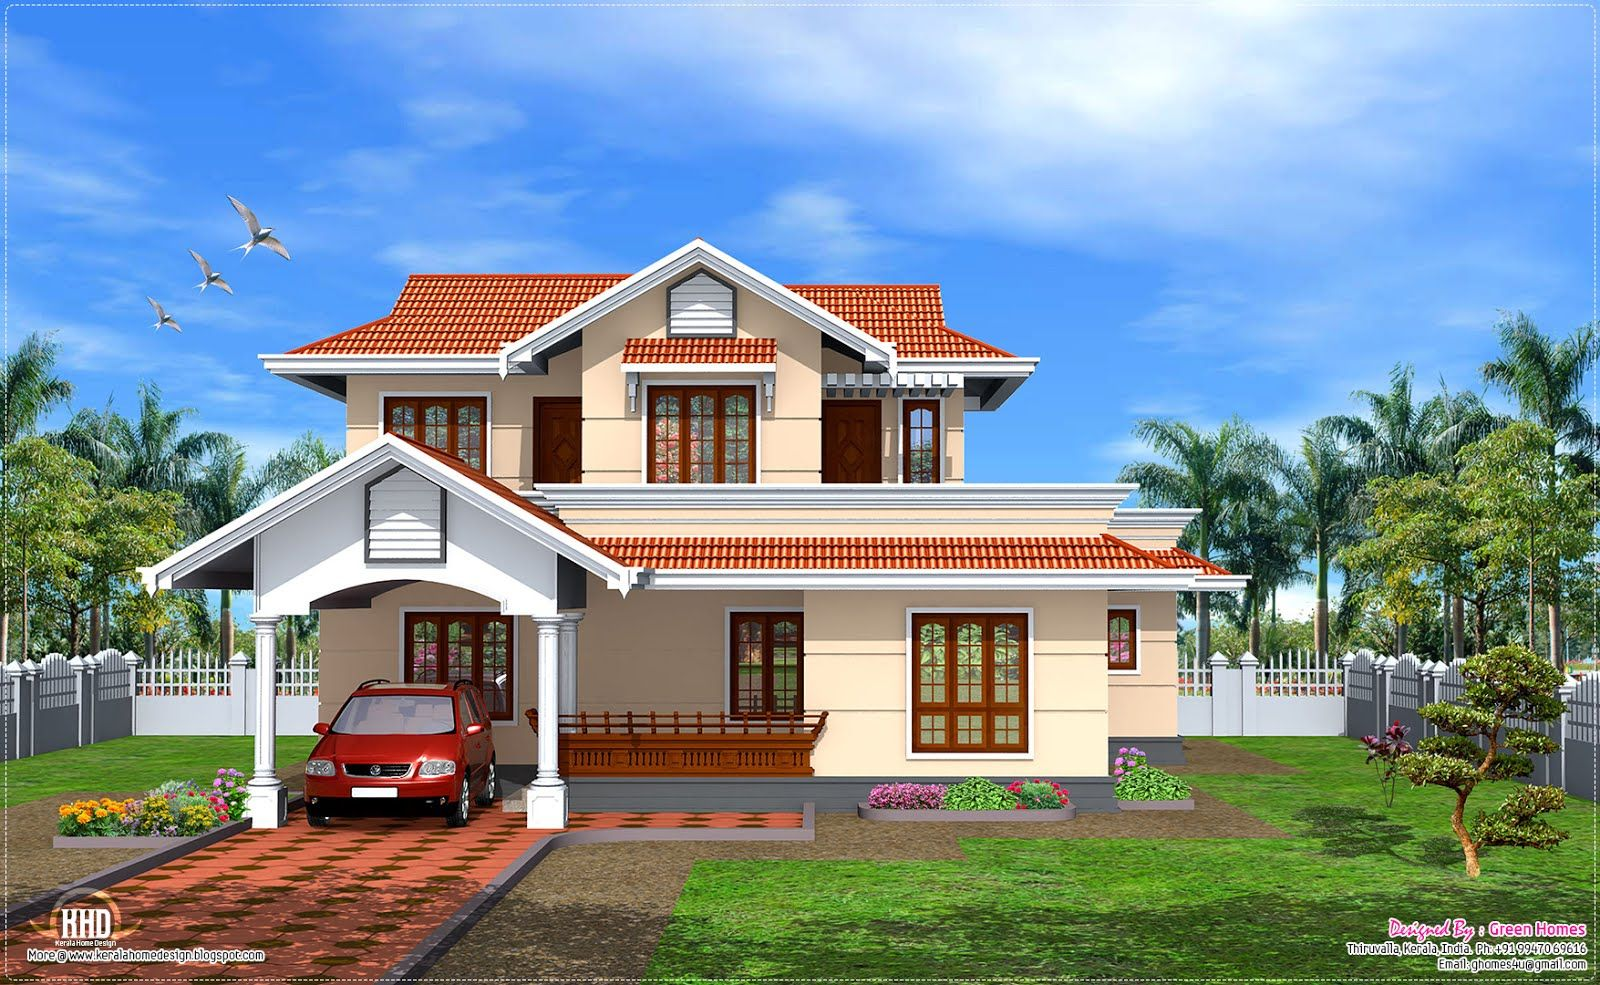 Architecture Design Kerala Model 5399individual house design-news | house elevation indian